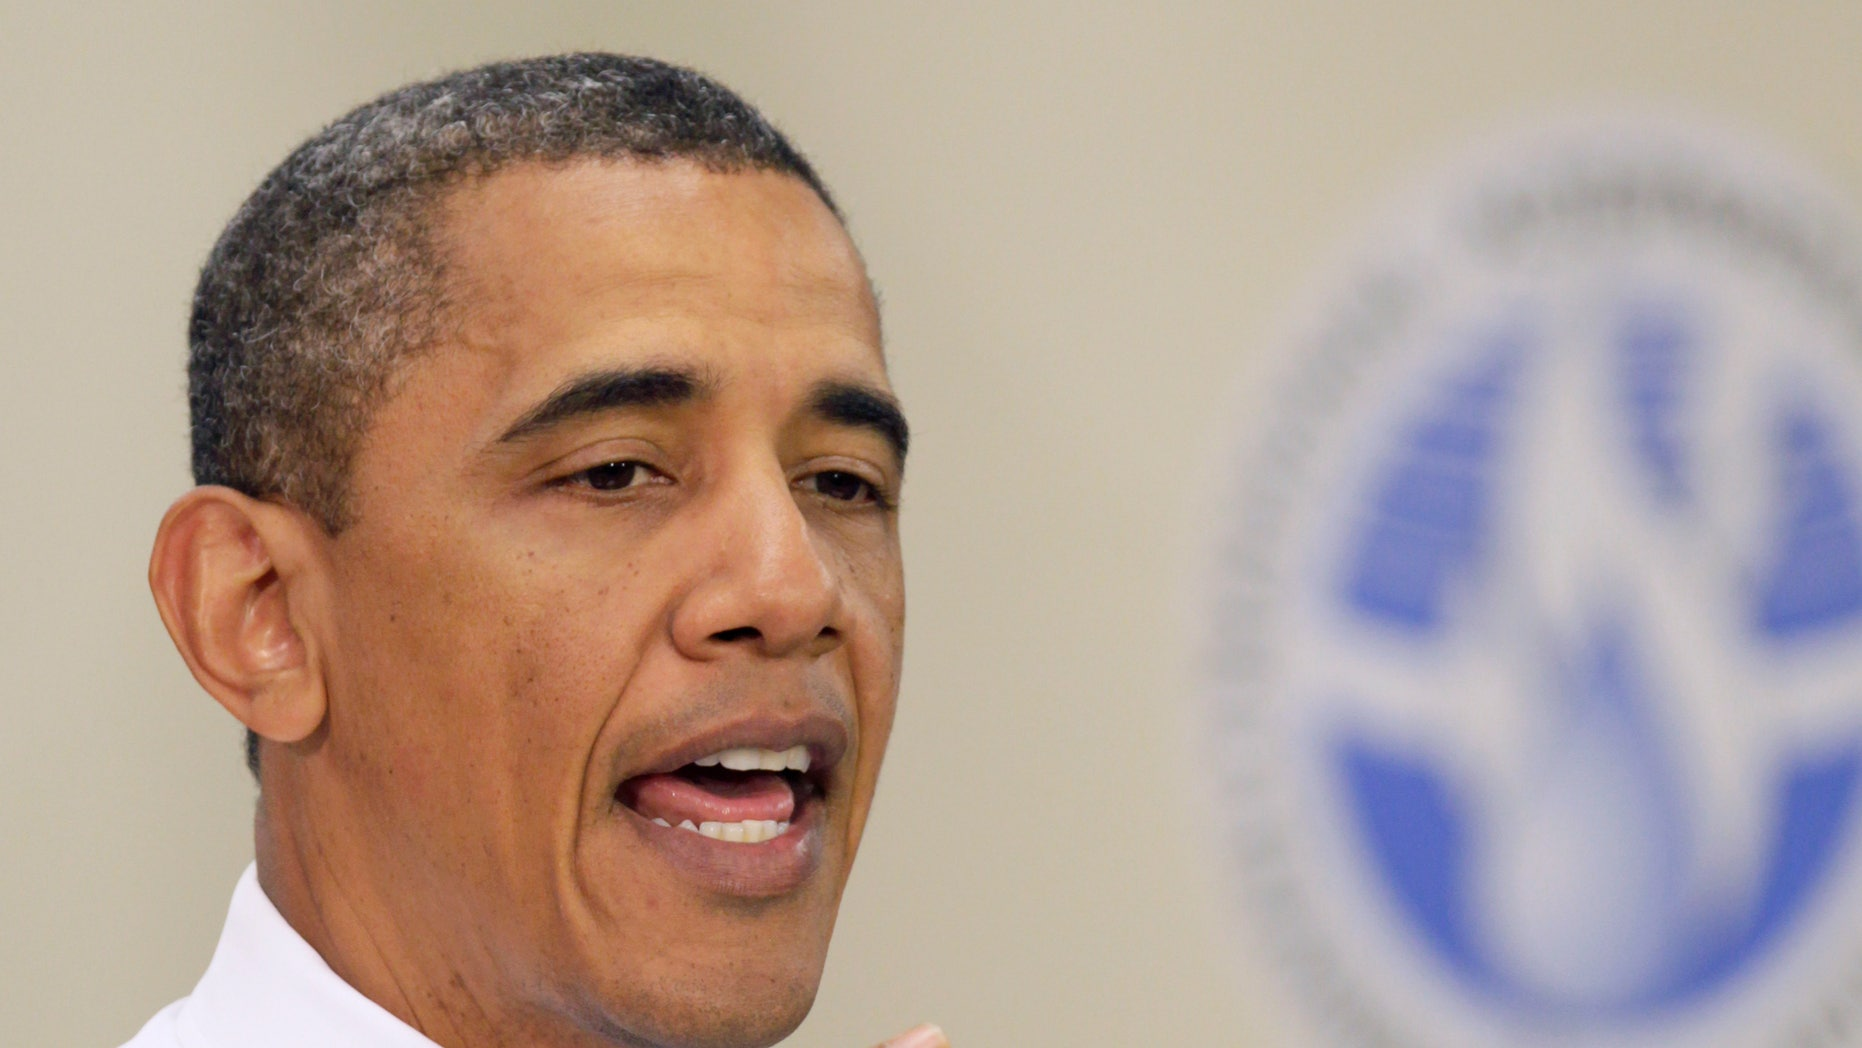 President Obama speaks at Northern Virginia Community College Alexandria, Va. Campus, Wednesday, June 8, 2011, to highlight the need to prepare the workforce to compete for manufacturing jobs across the country. (AP)